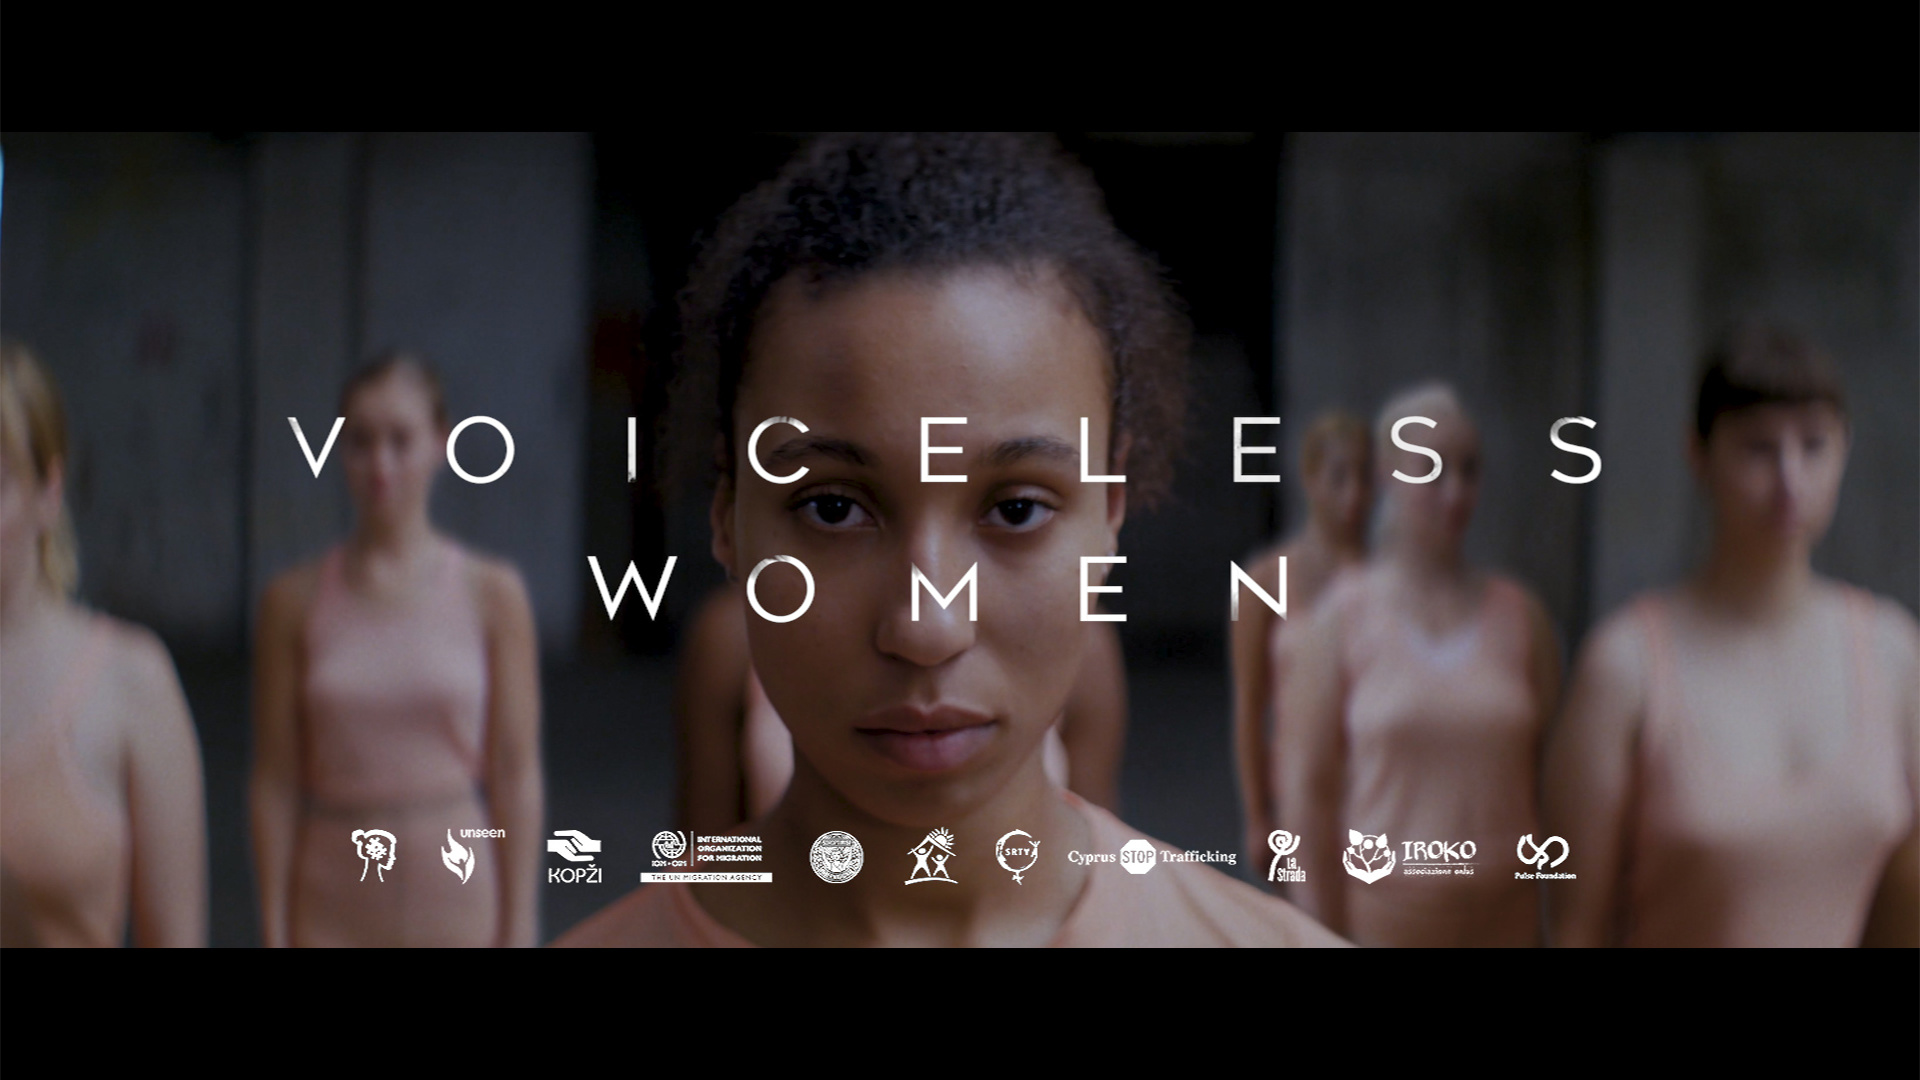 The Voiceless Women Thumbnail